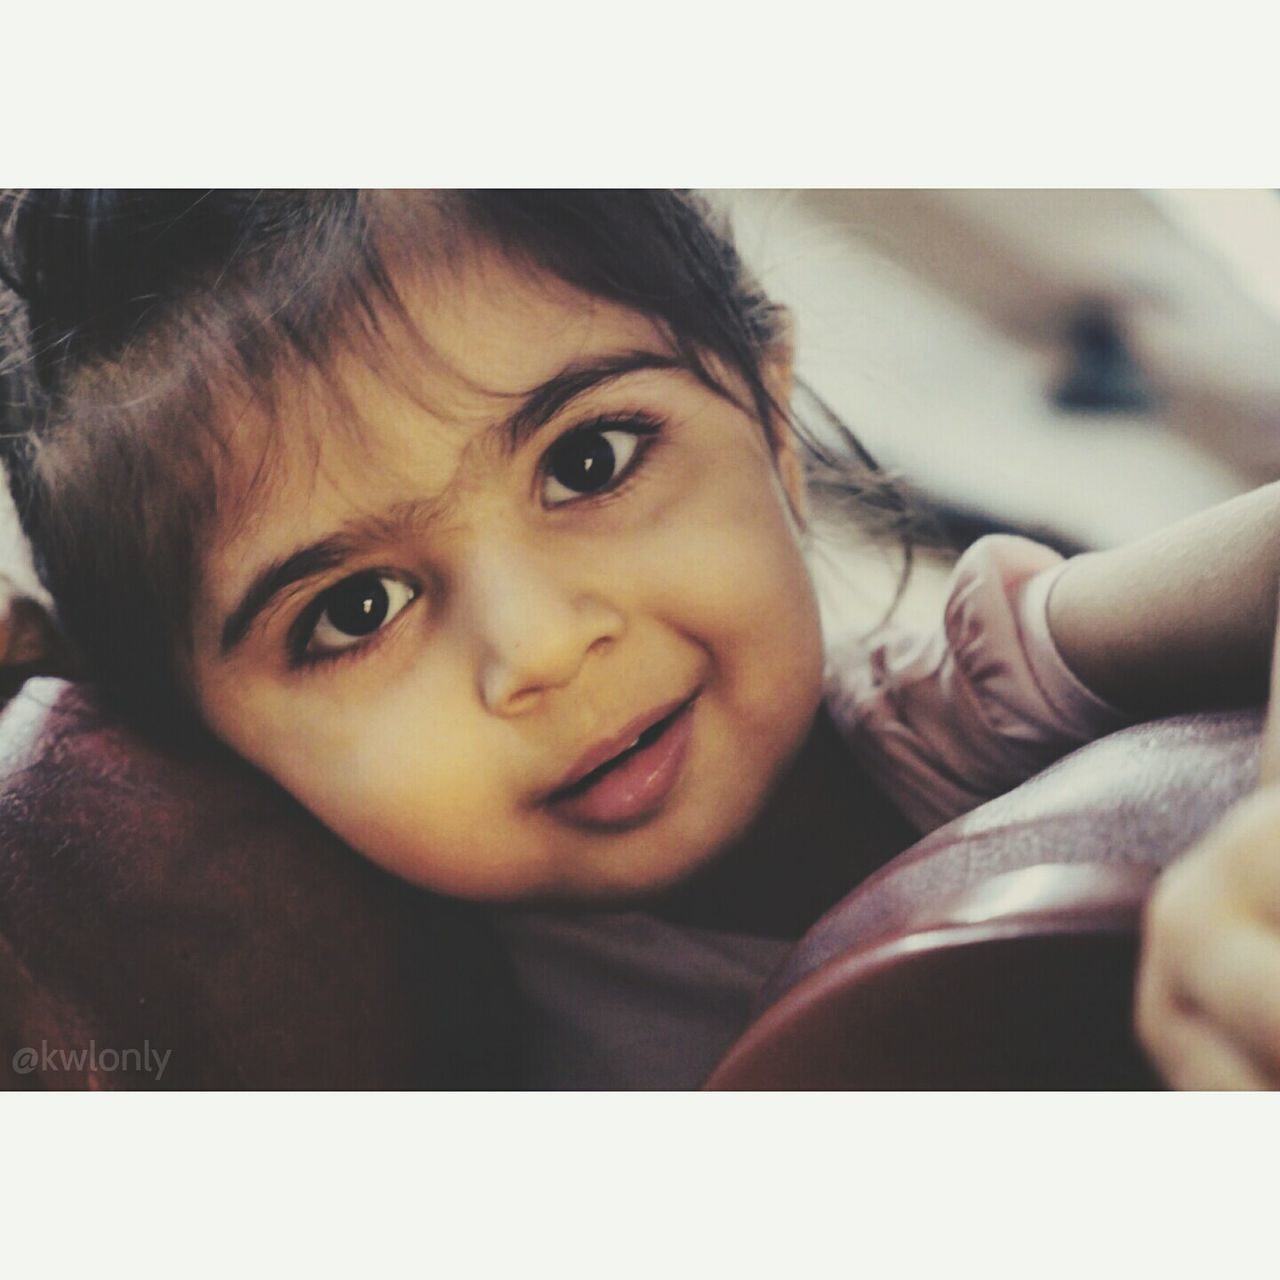 childhood, innocence, looking at camera, cute, portrait, smiling, happiness, child, indoors, love, bonding, close-up, togetherness, real people, two people, friendship, people